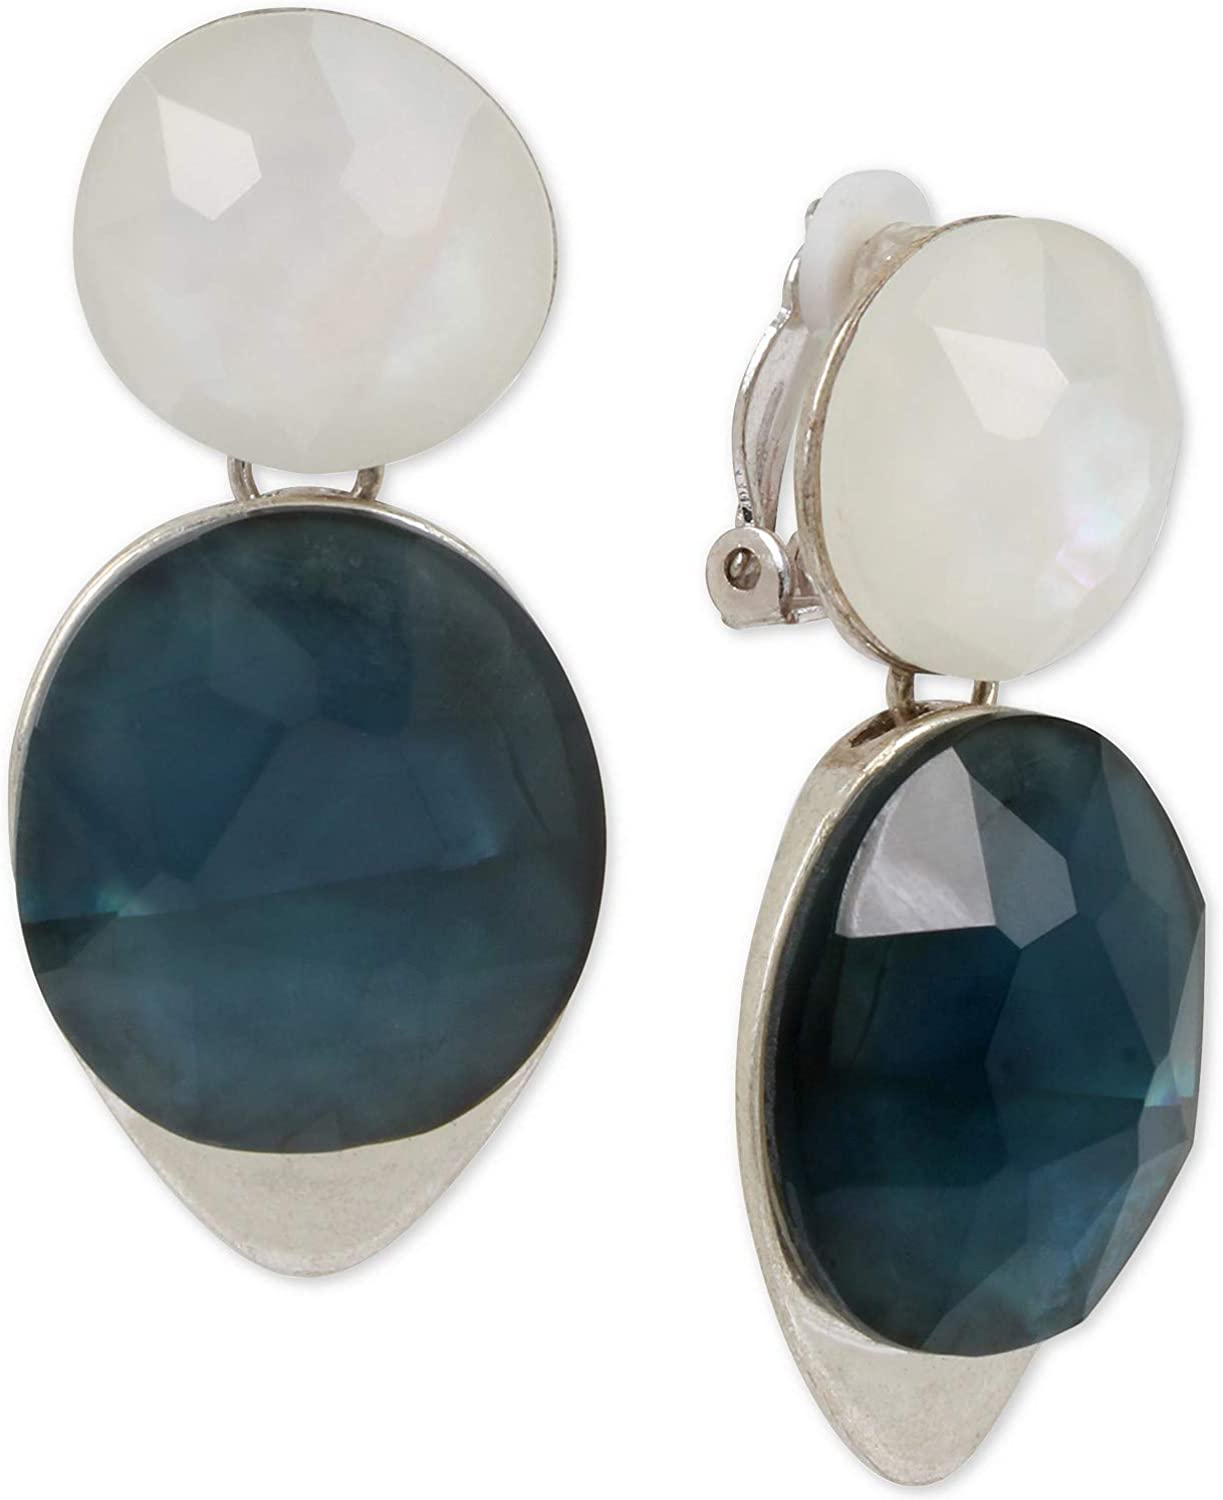 Robert Chicago Mall Lee Morris Soho Silver-Tone Drop Ear Clip-On Stone 2021 spring and summer new Double